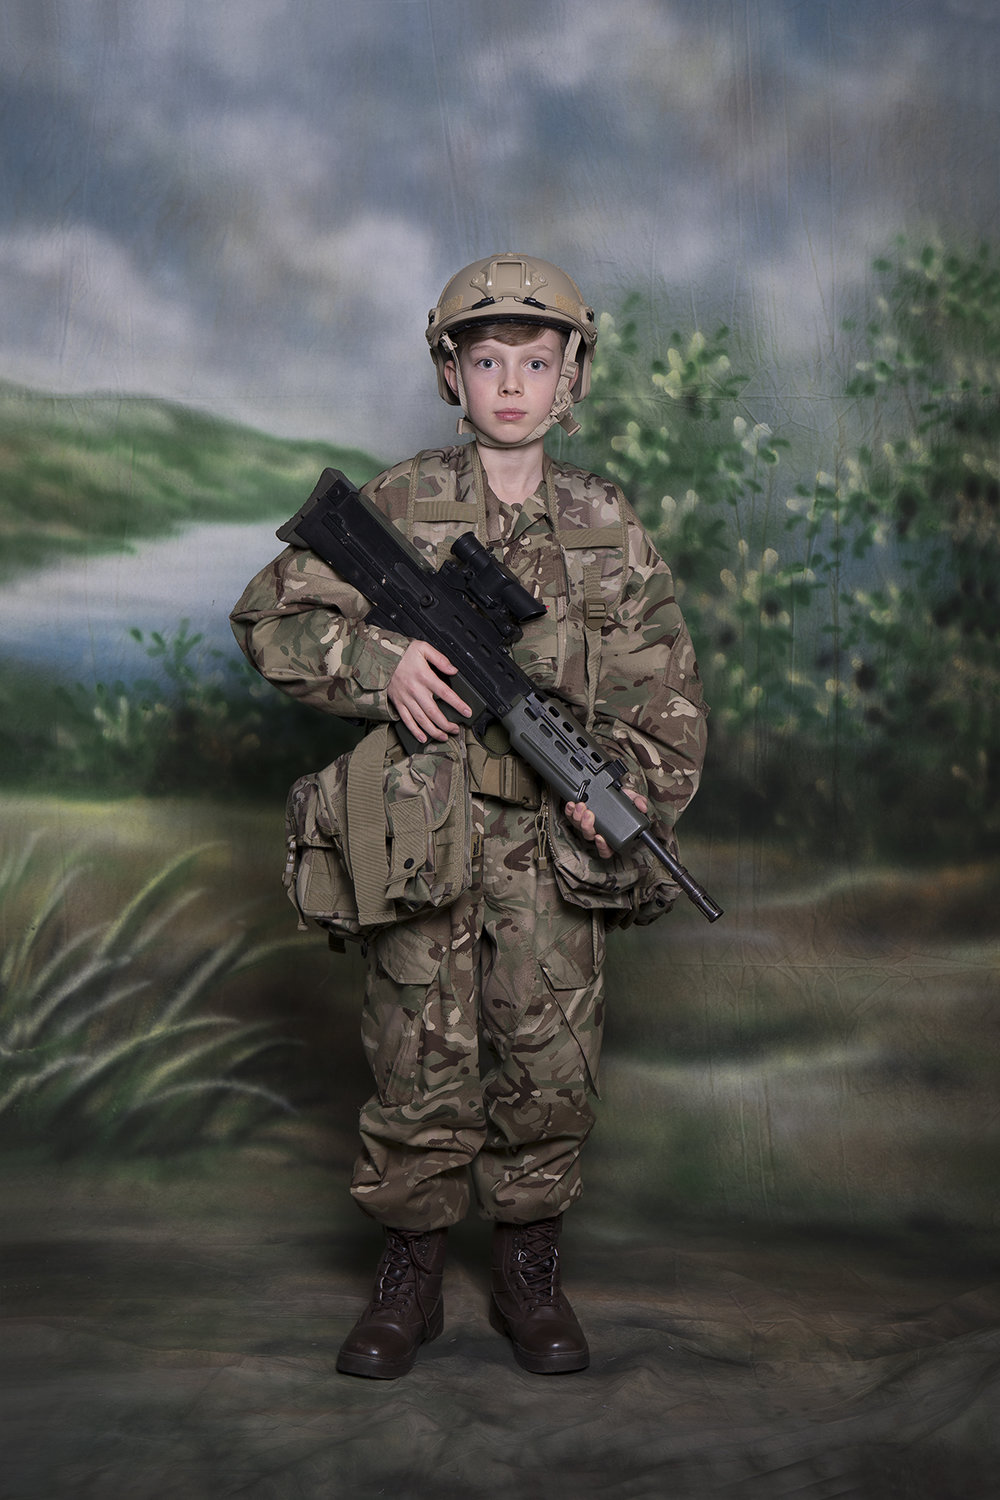 The Guernsey Detachment Army Cadet Force